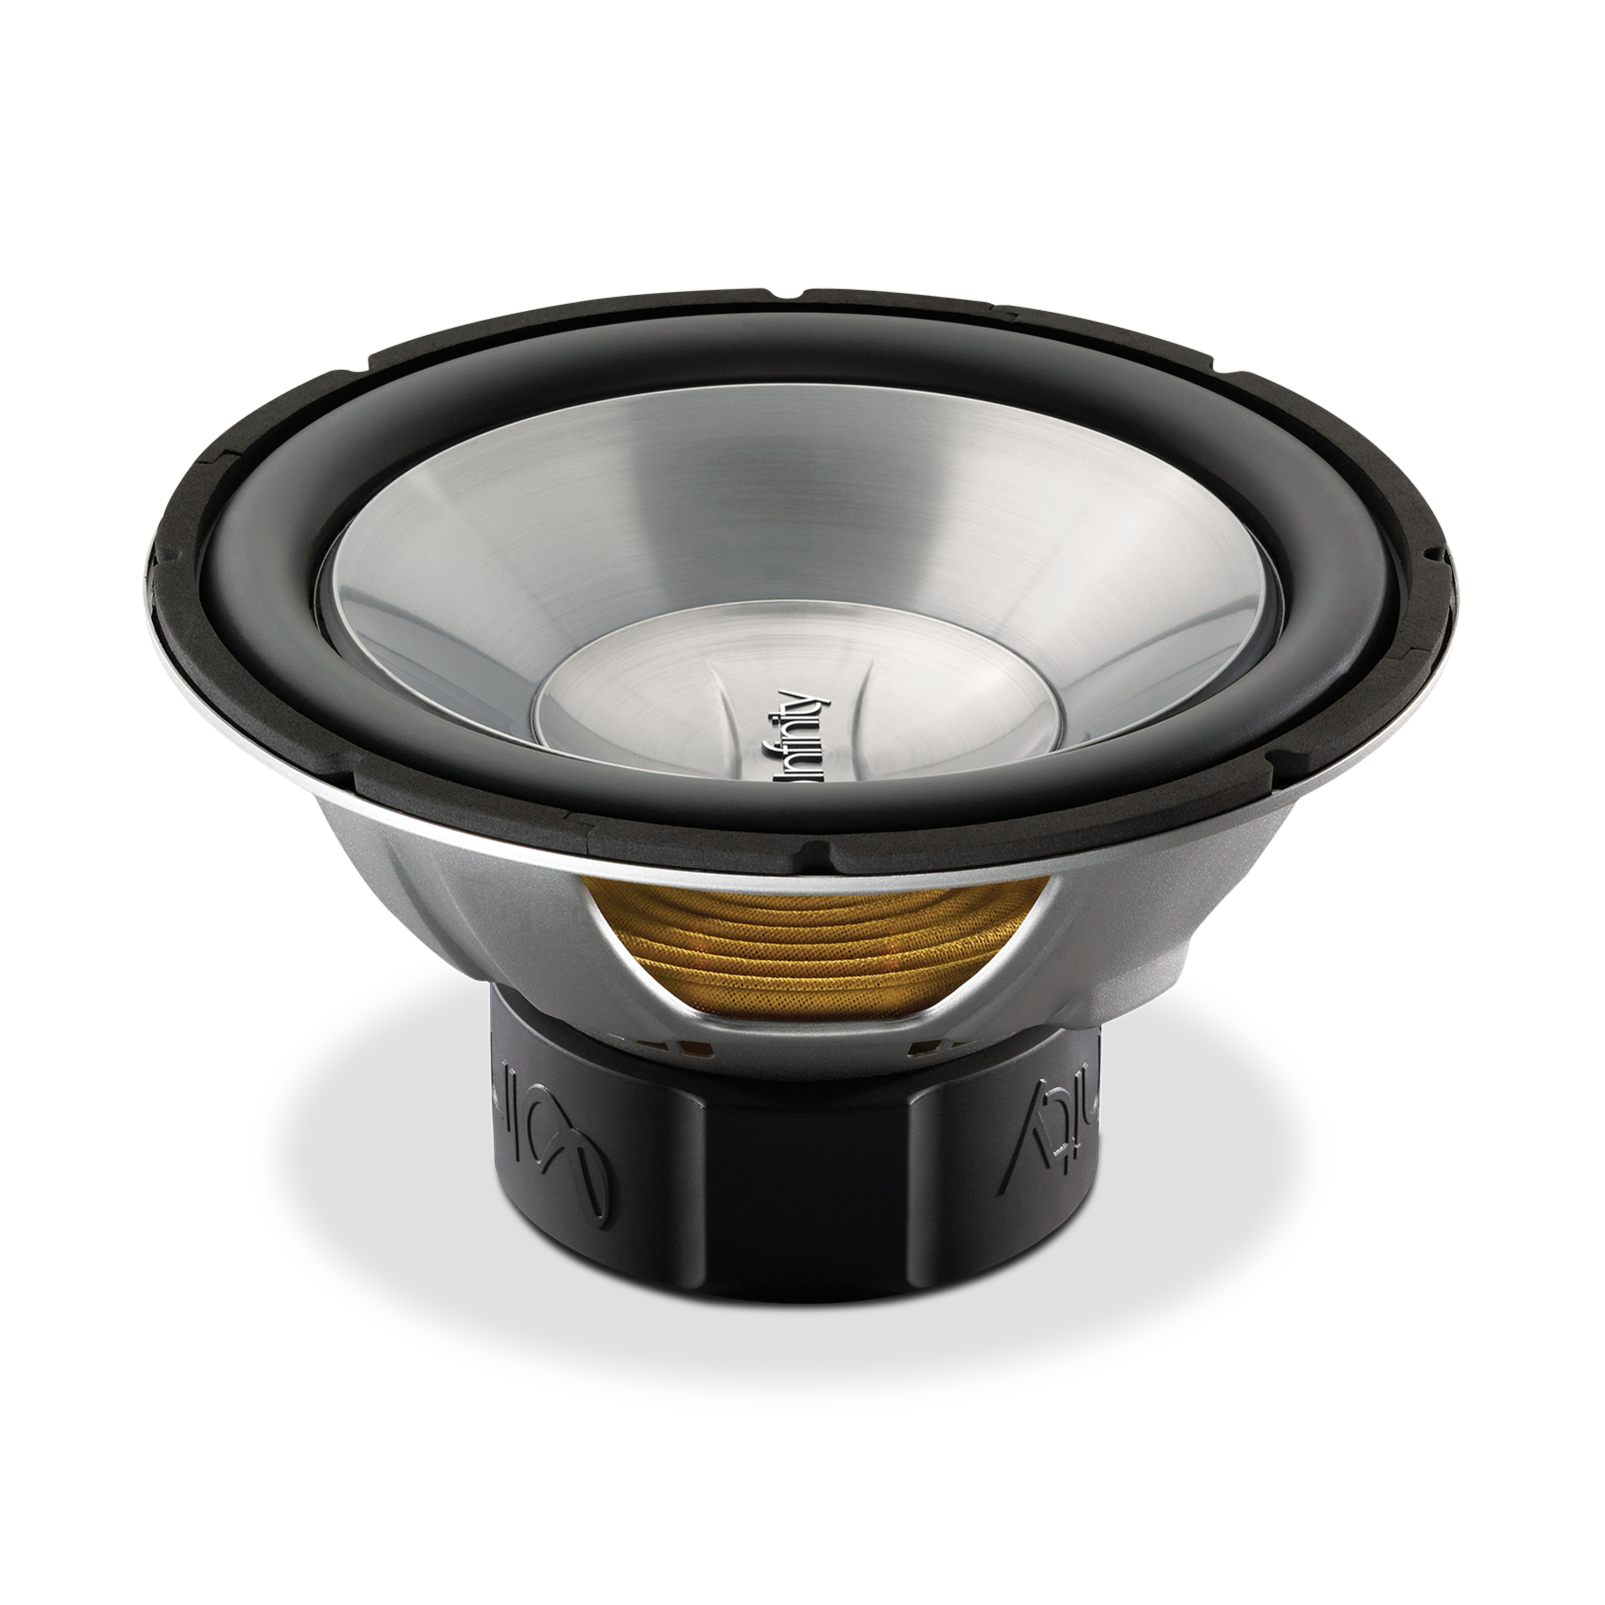 Infinity Reference 1262w 12 Dual Voice Coil Car Subwoofer Device And Speaker Using On Wiring Speakers